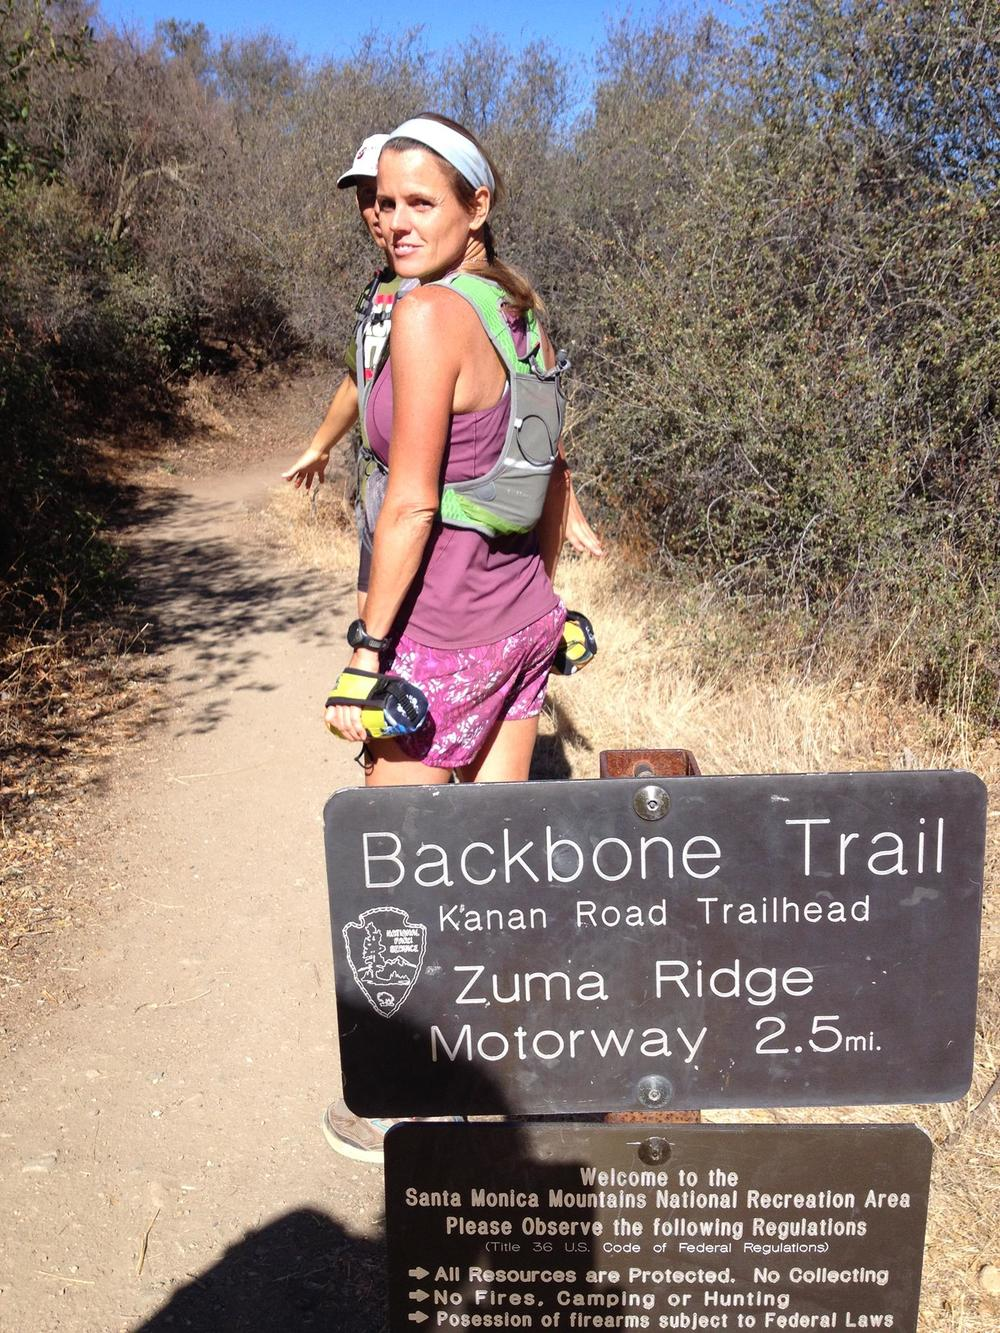 KH backbone trail.jpg